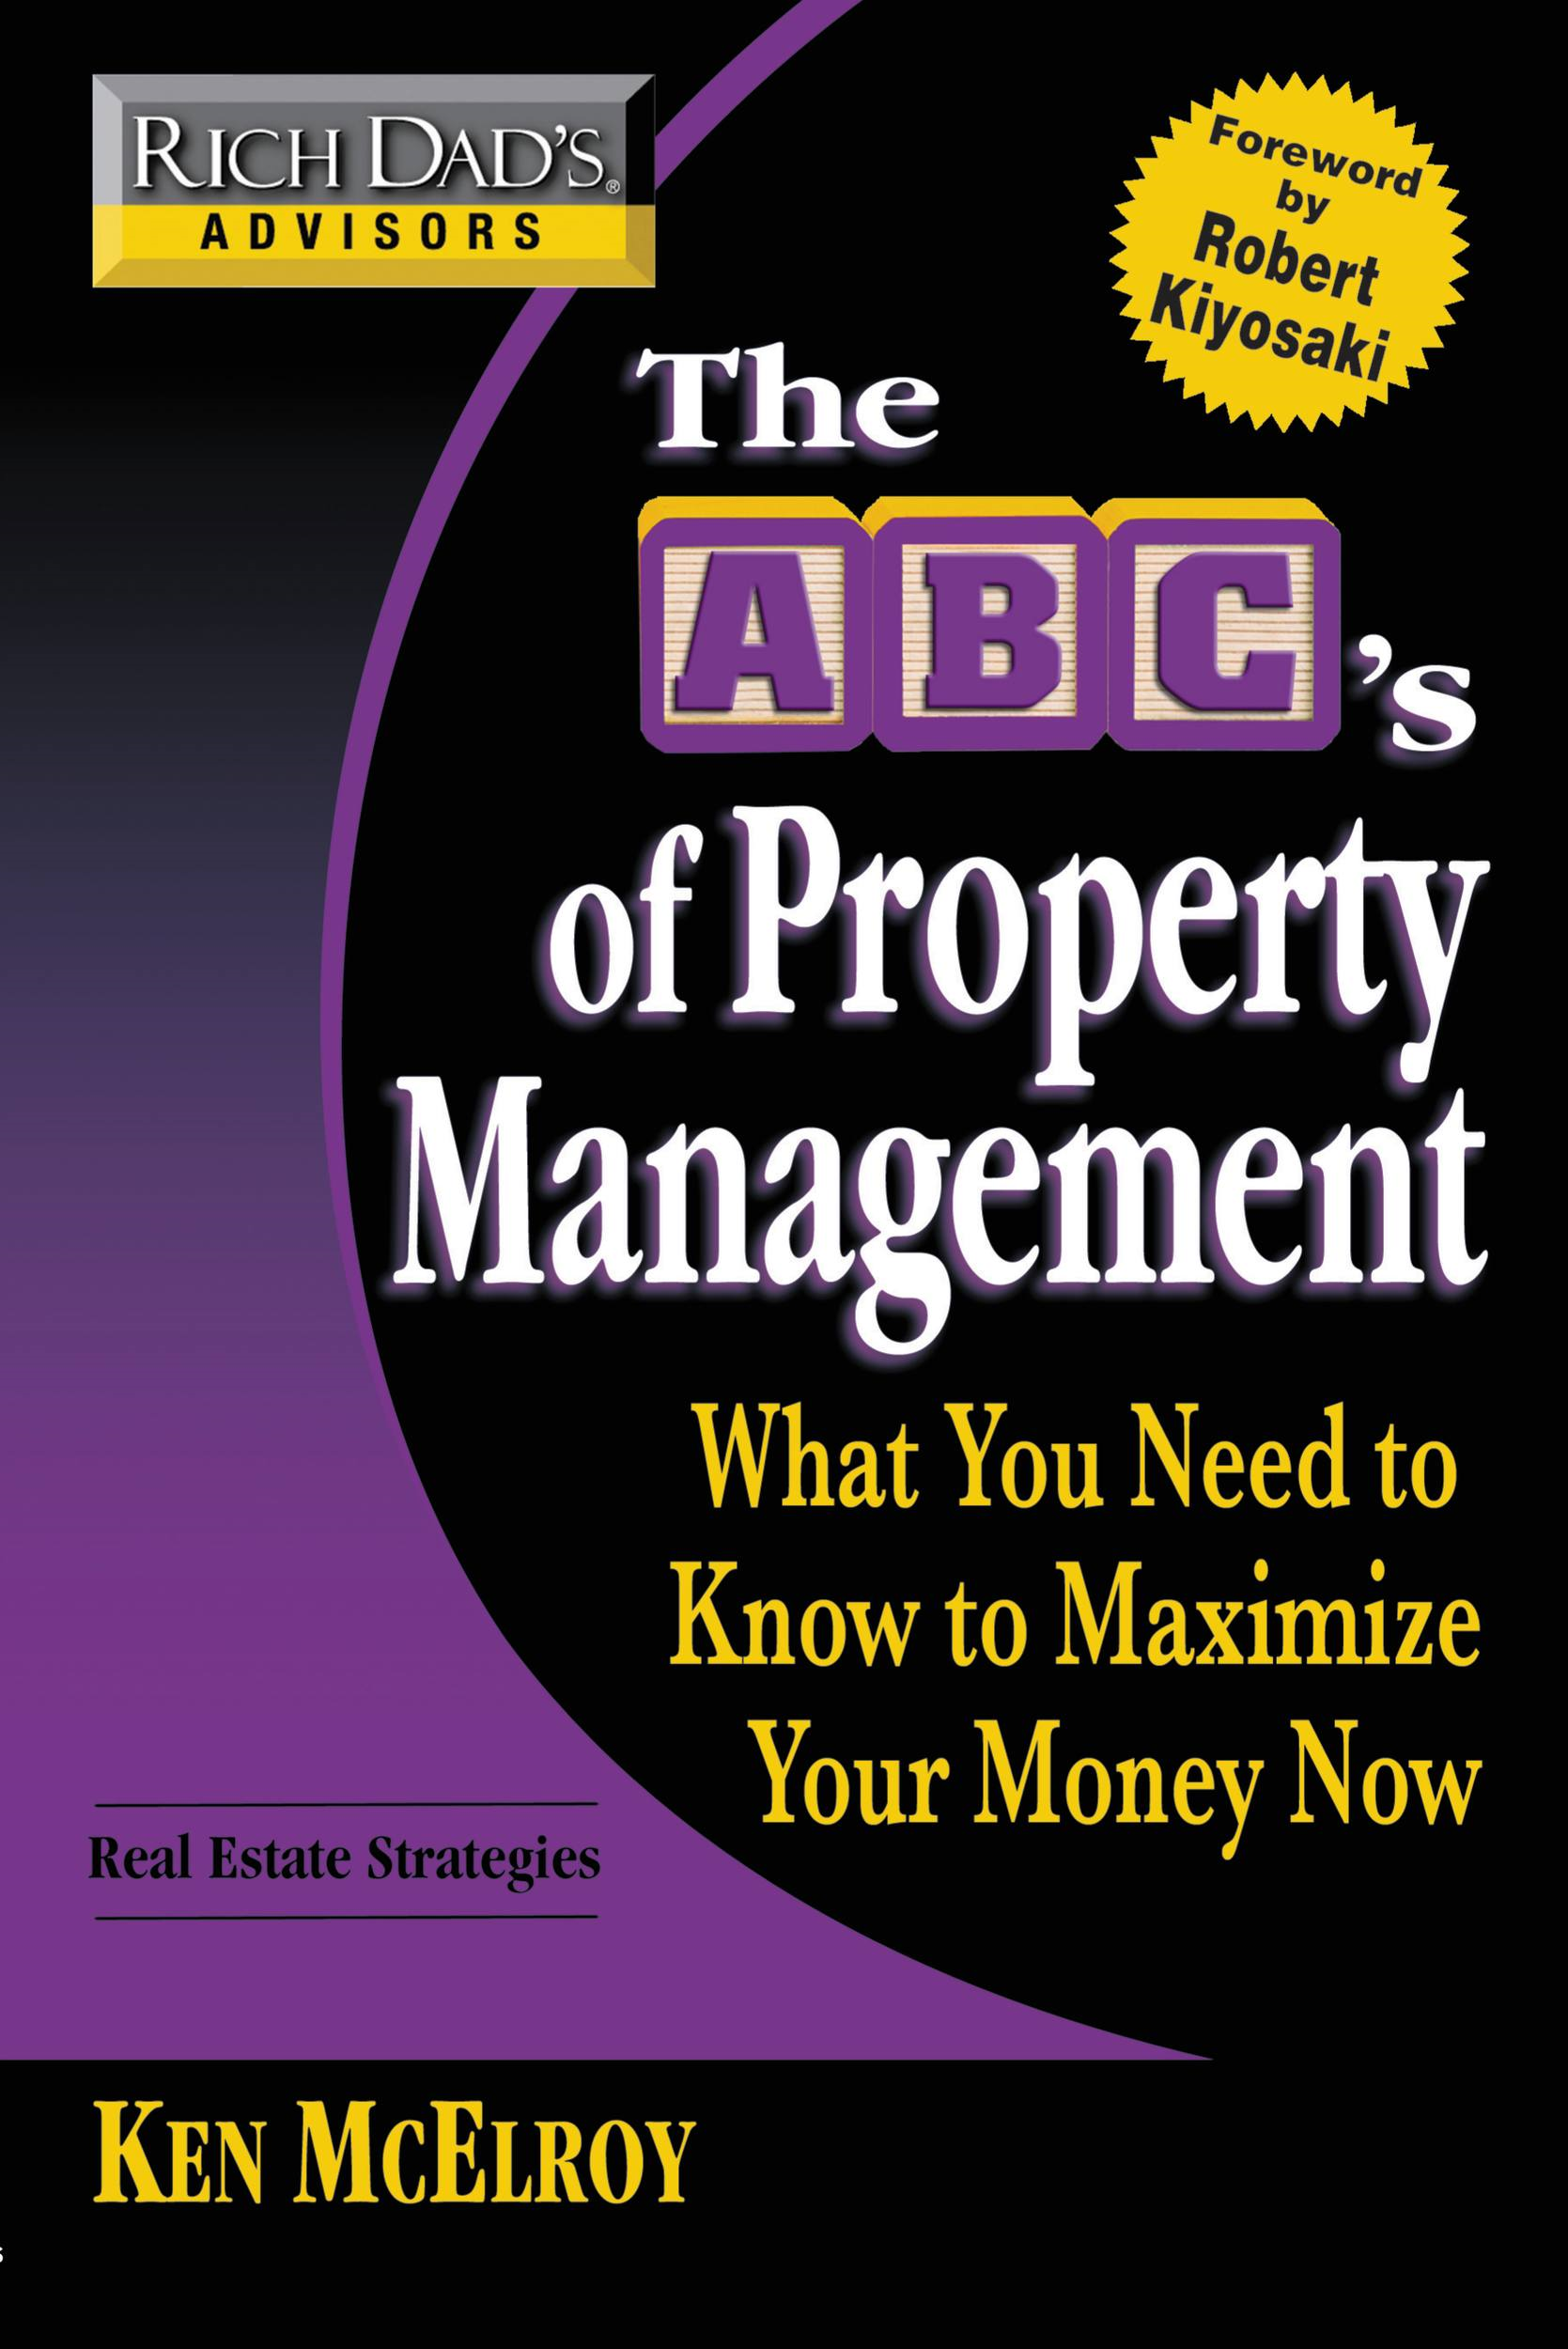 Rich Dad's Advisors: The ABC's of Property Management By: Ken McElroy